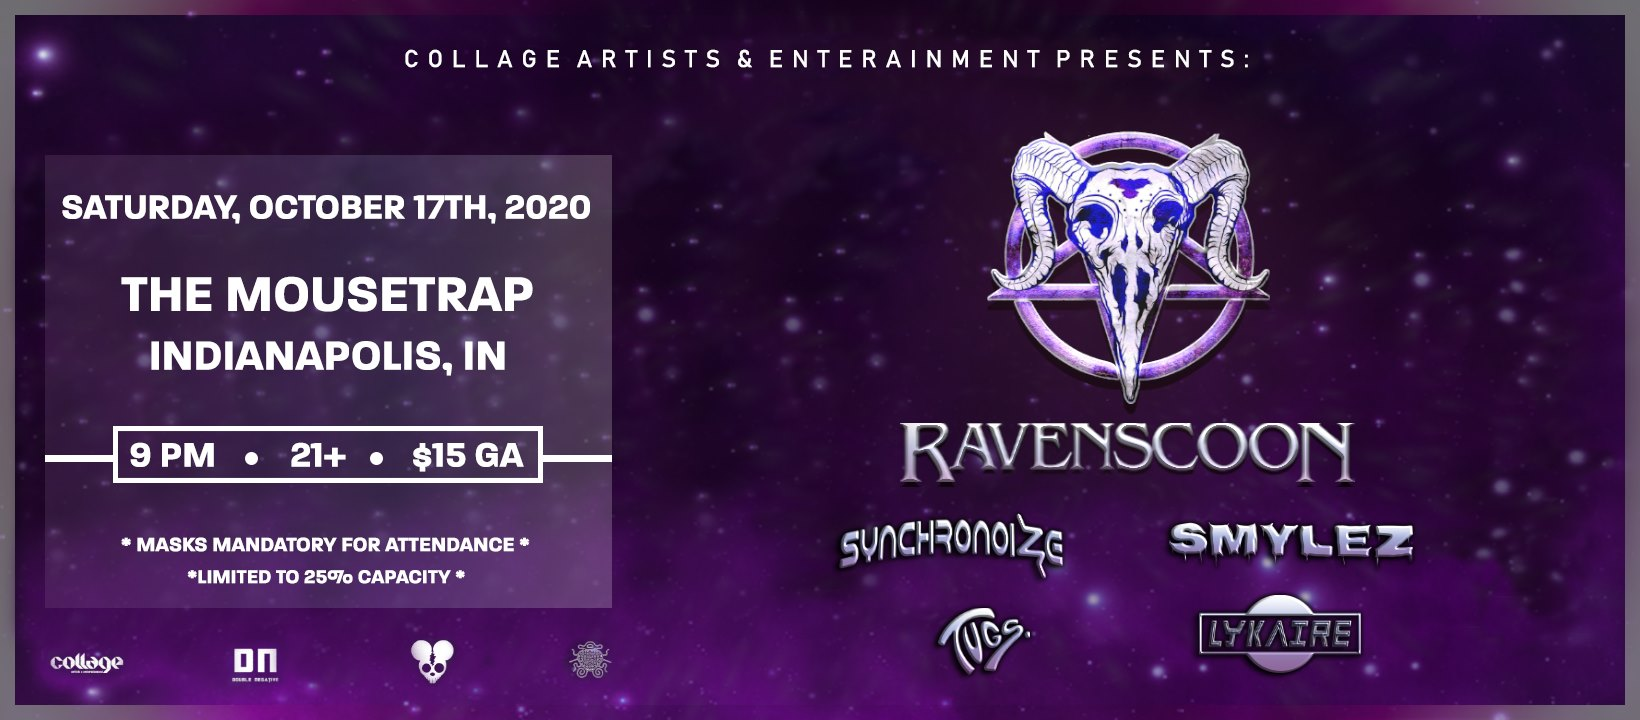 Ravenscoon w/ Synchronoize, Smylez, Lykaire & TUGS. - Saturday, October 17th